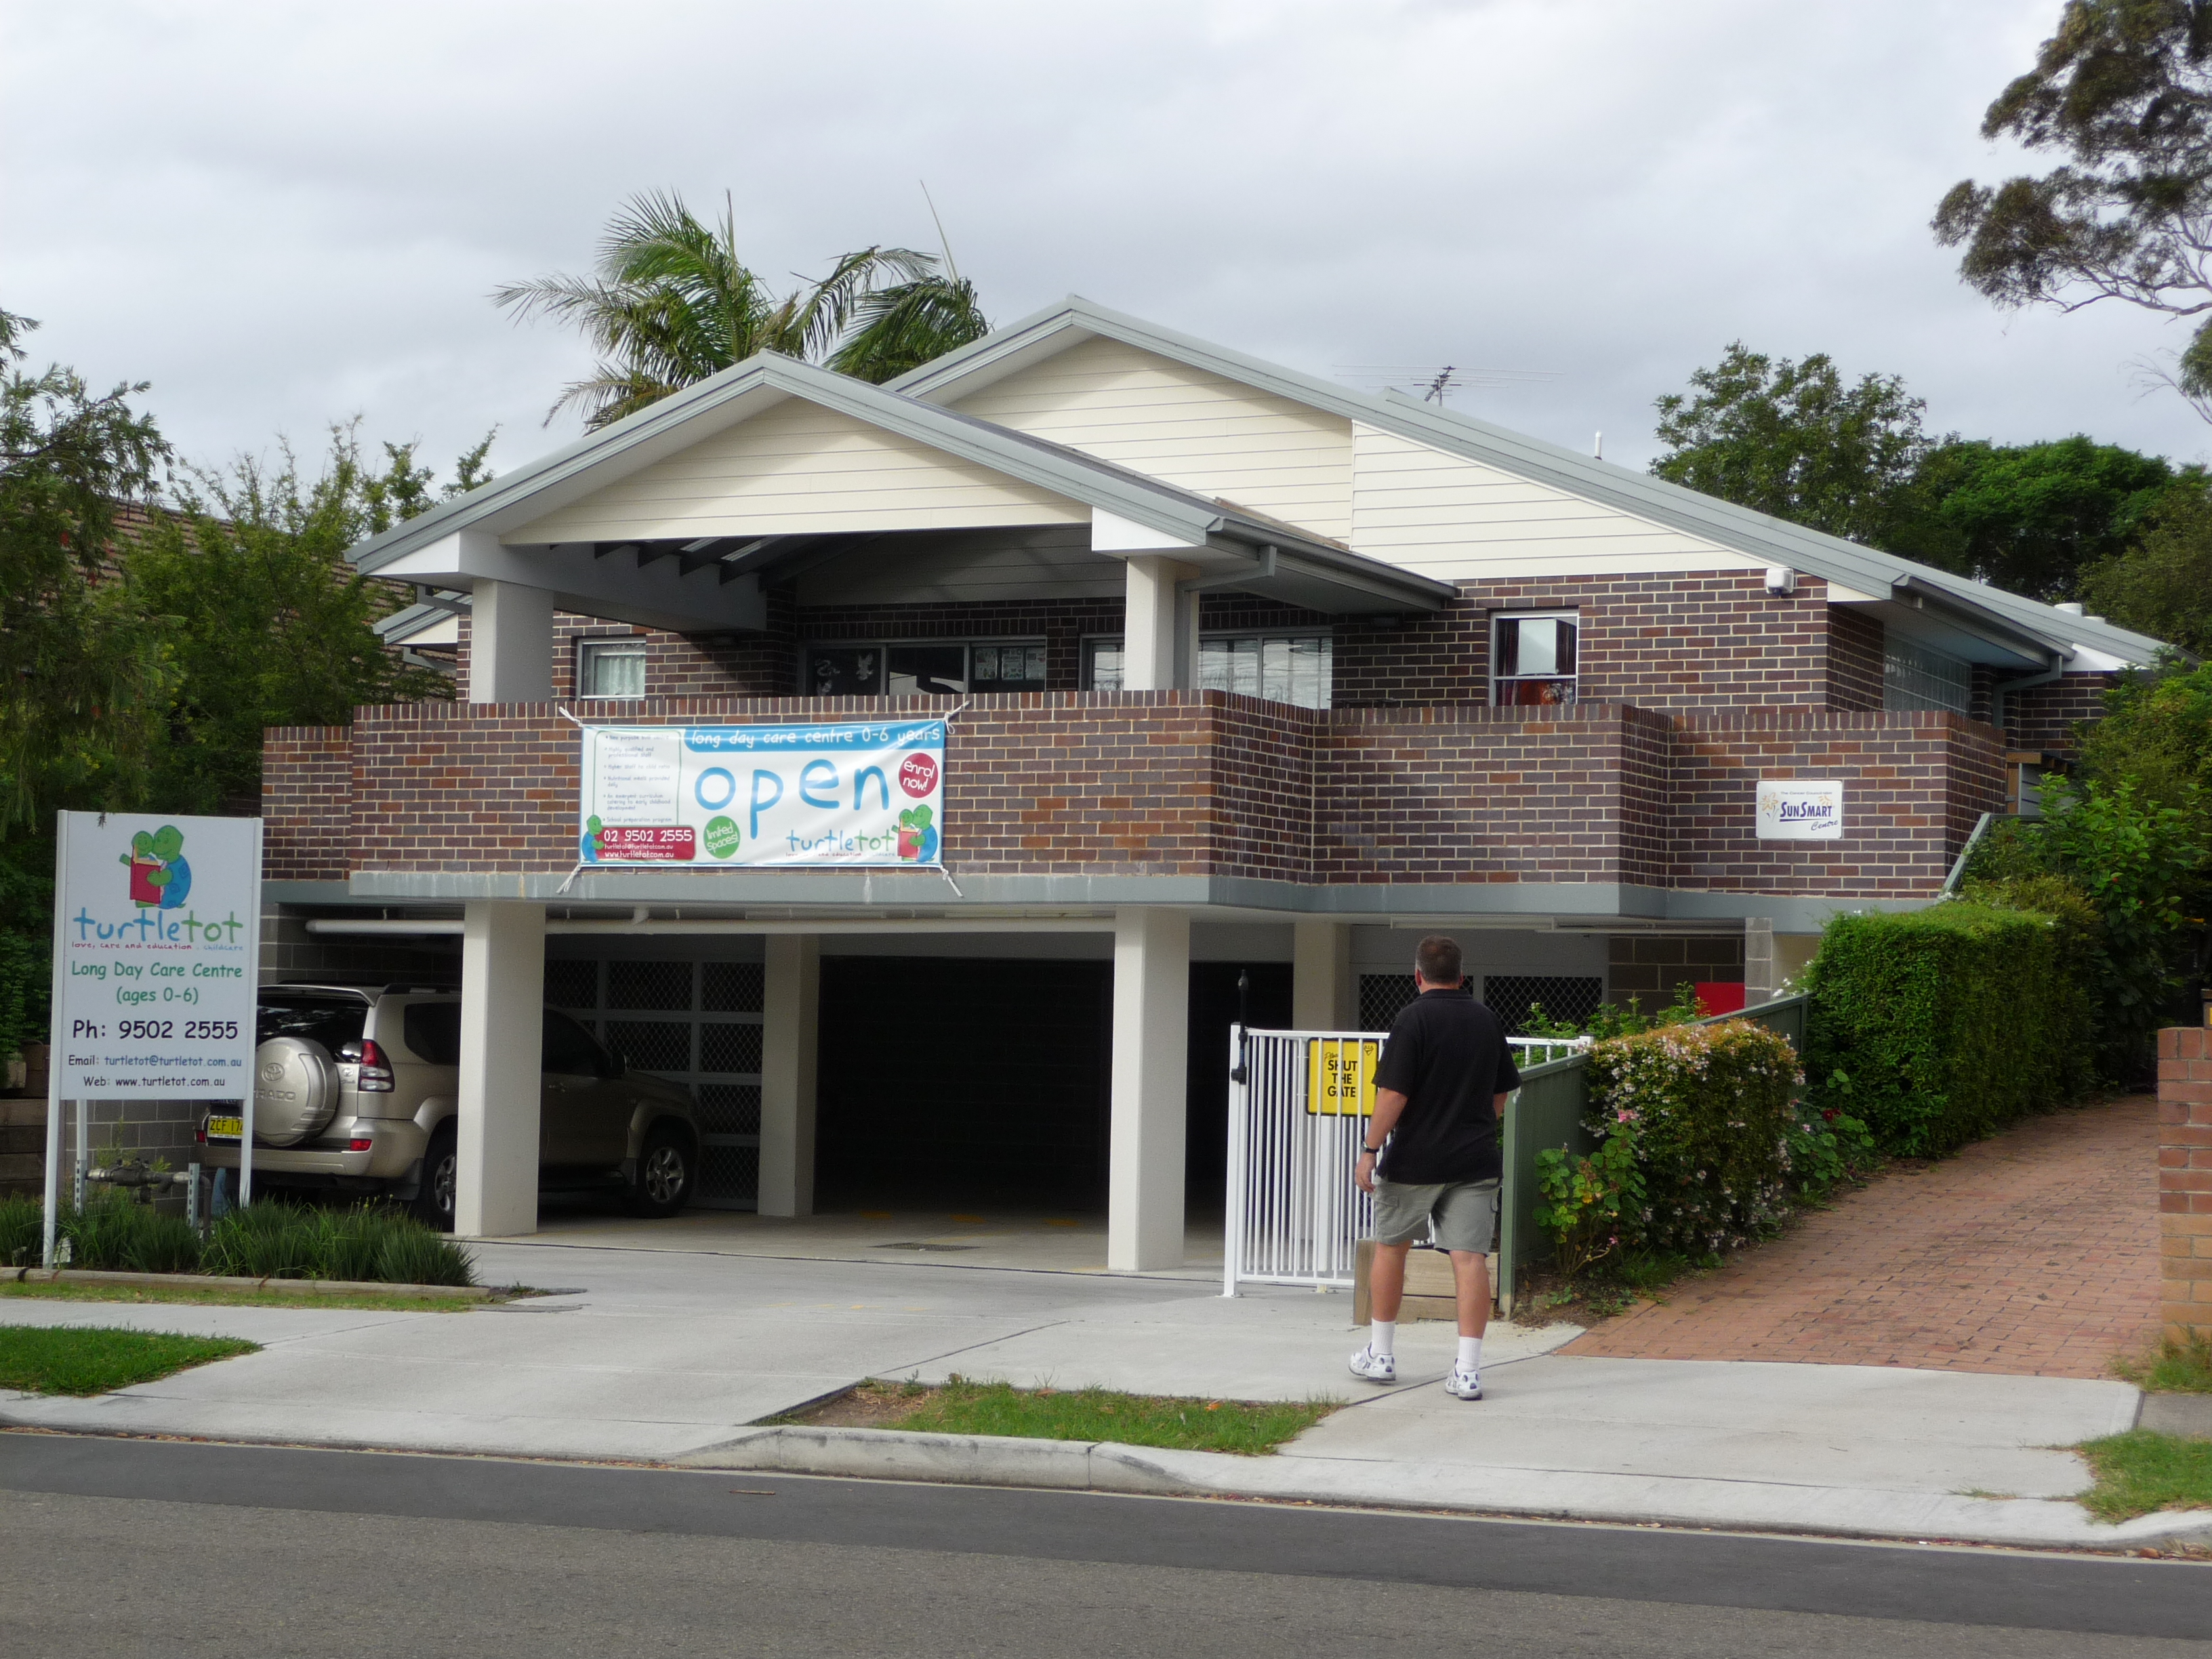 New Child Care Development in Bexley NSW 2207 - Rockdale Council